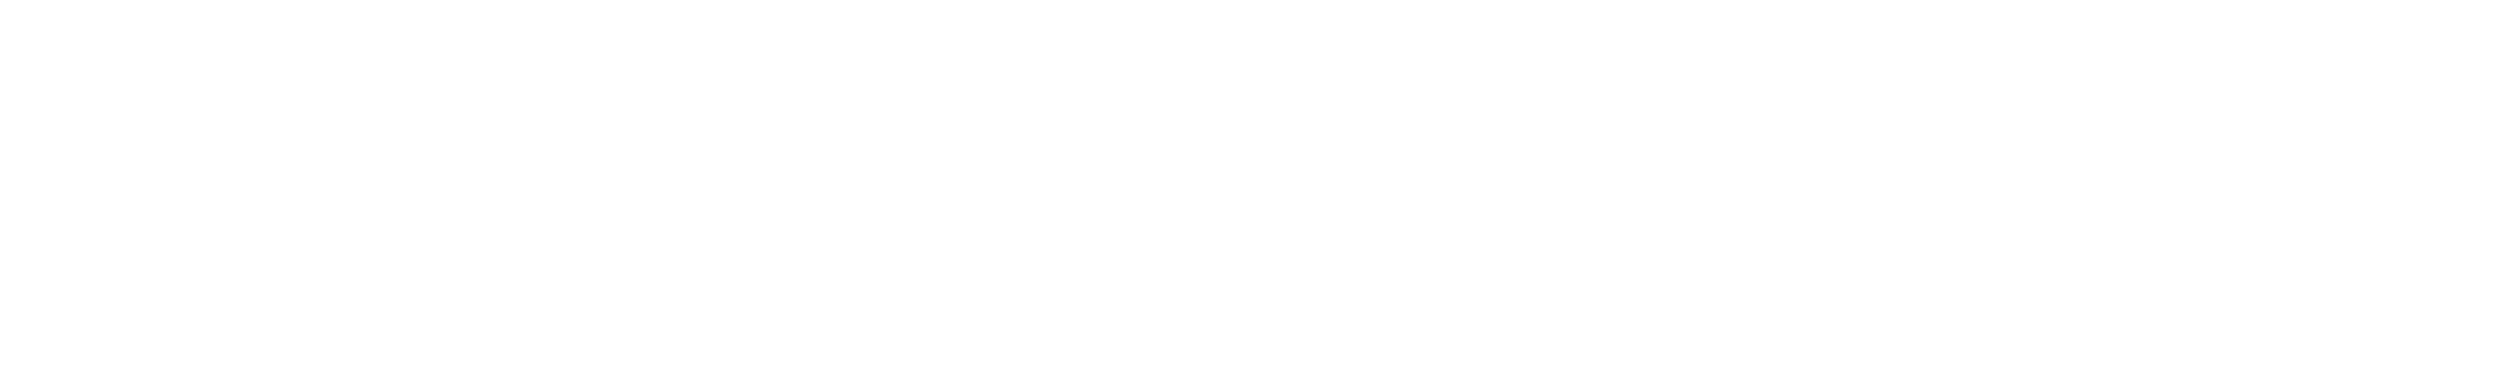 2.0 SILK AND BRAMBLE VECTOR COMBINED 4.0_v02 (1).png